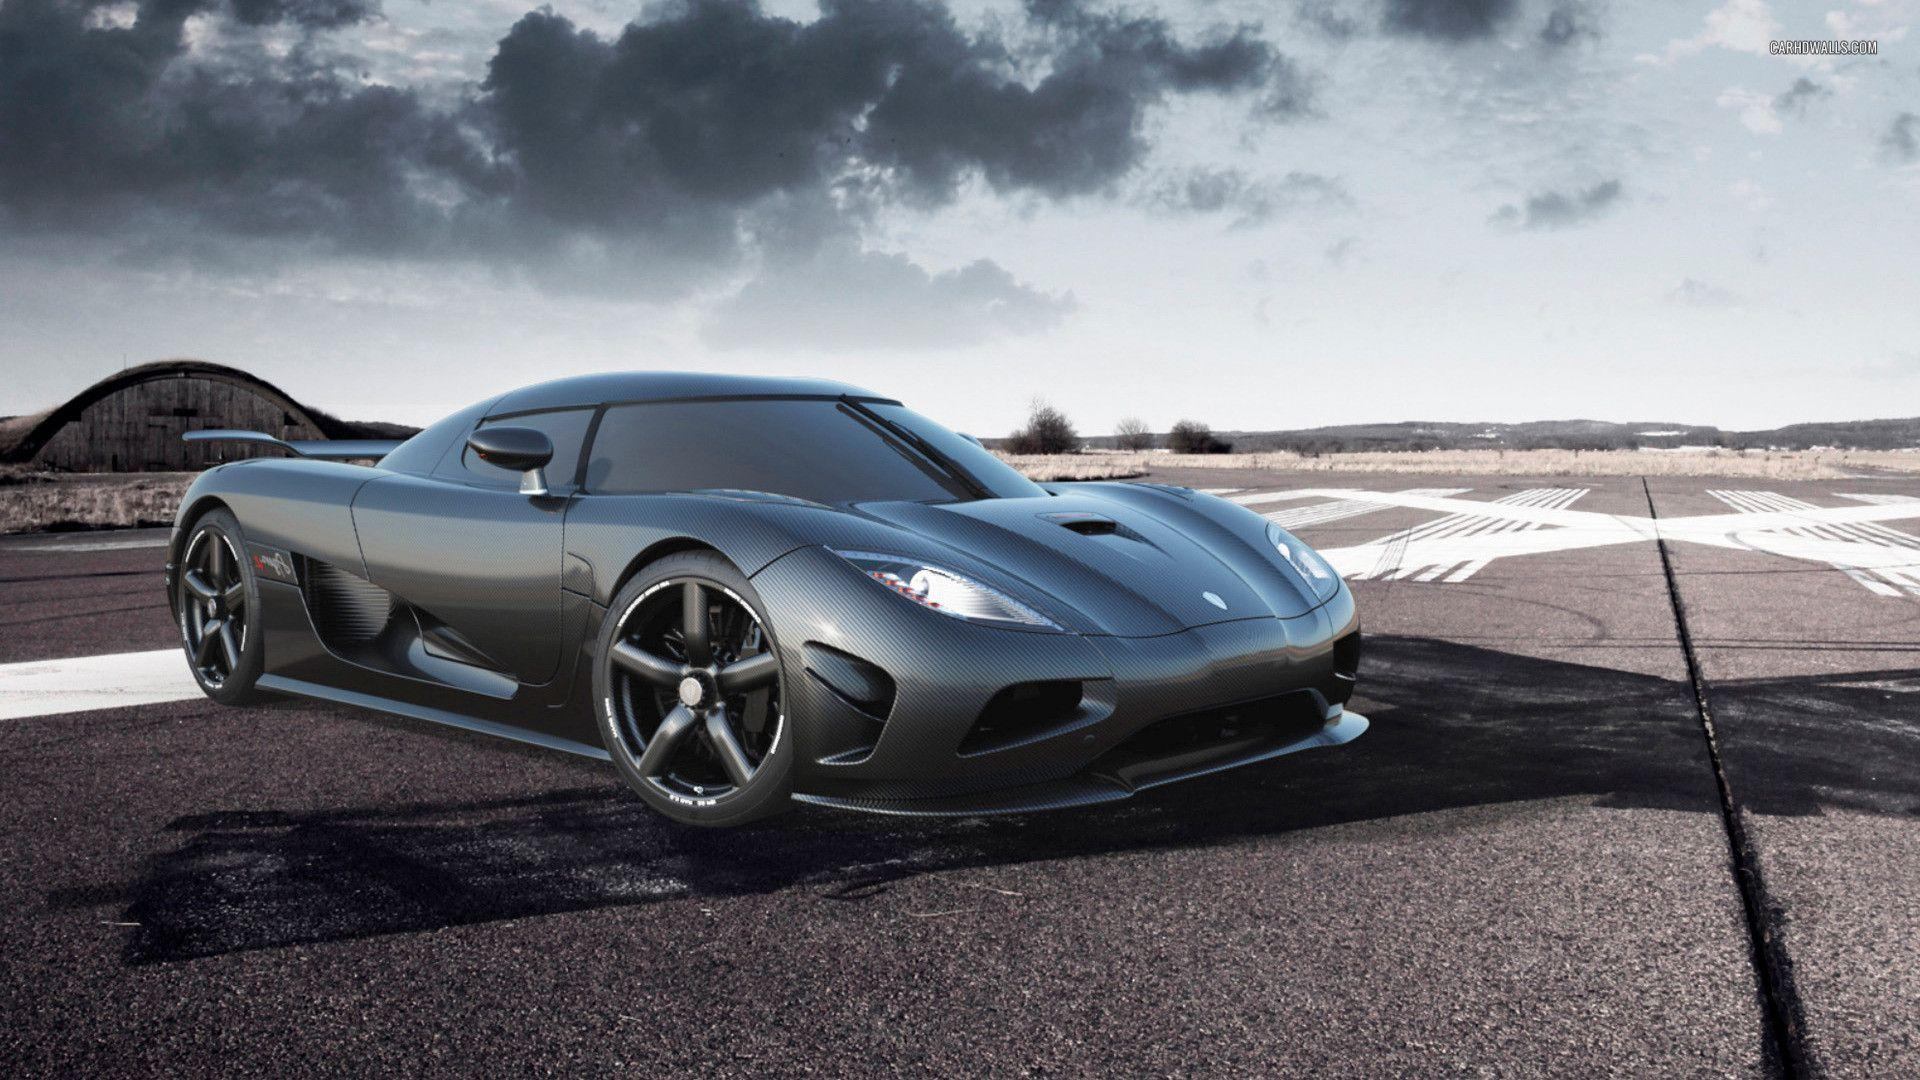 Wallpapers For > Koenigsegg Agera R Wallpapers Blue